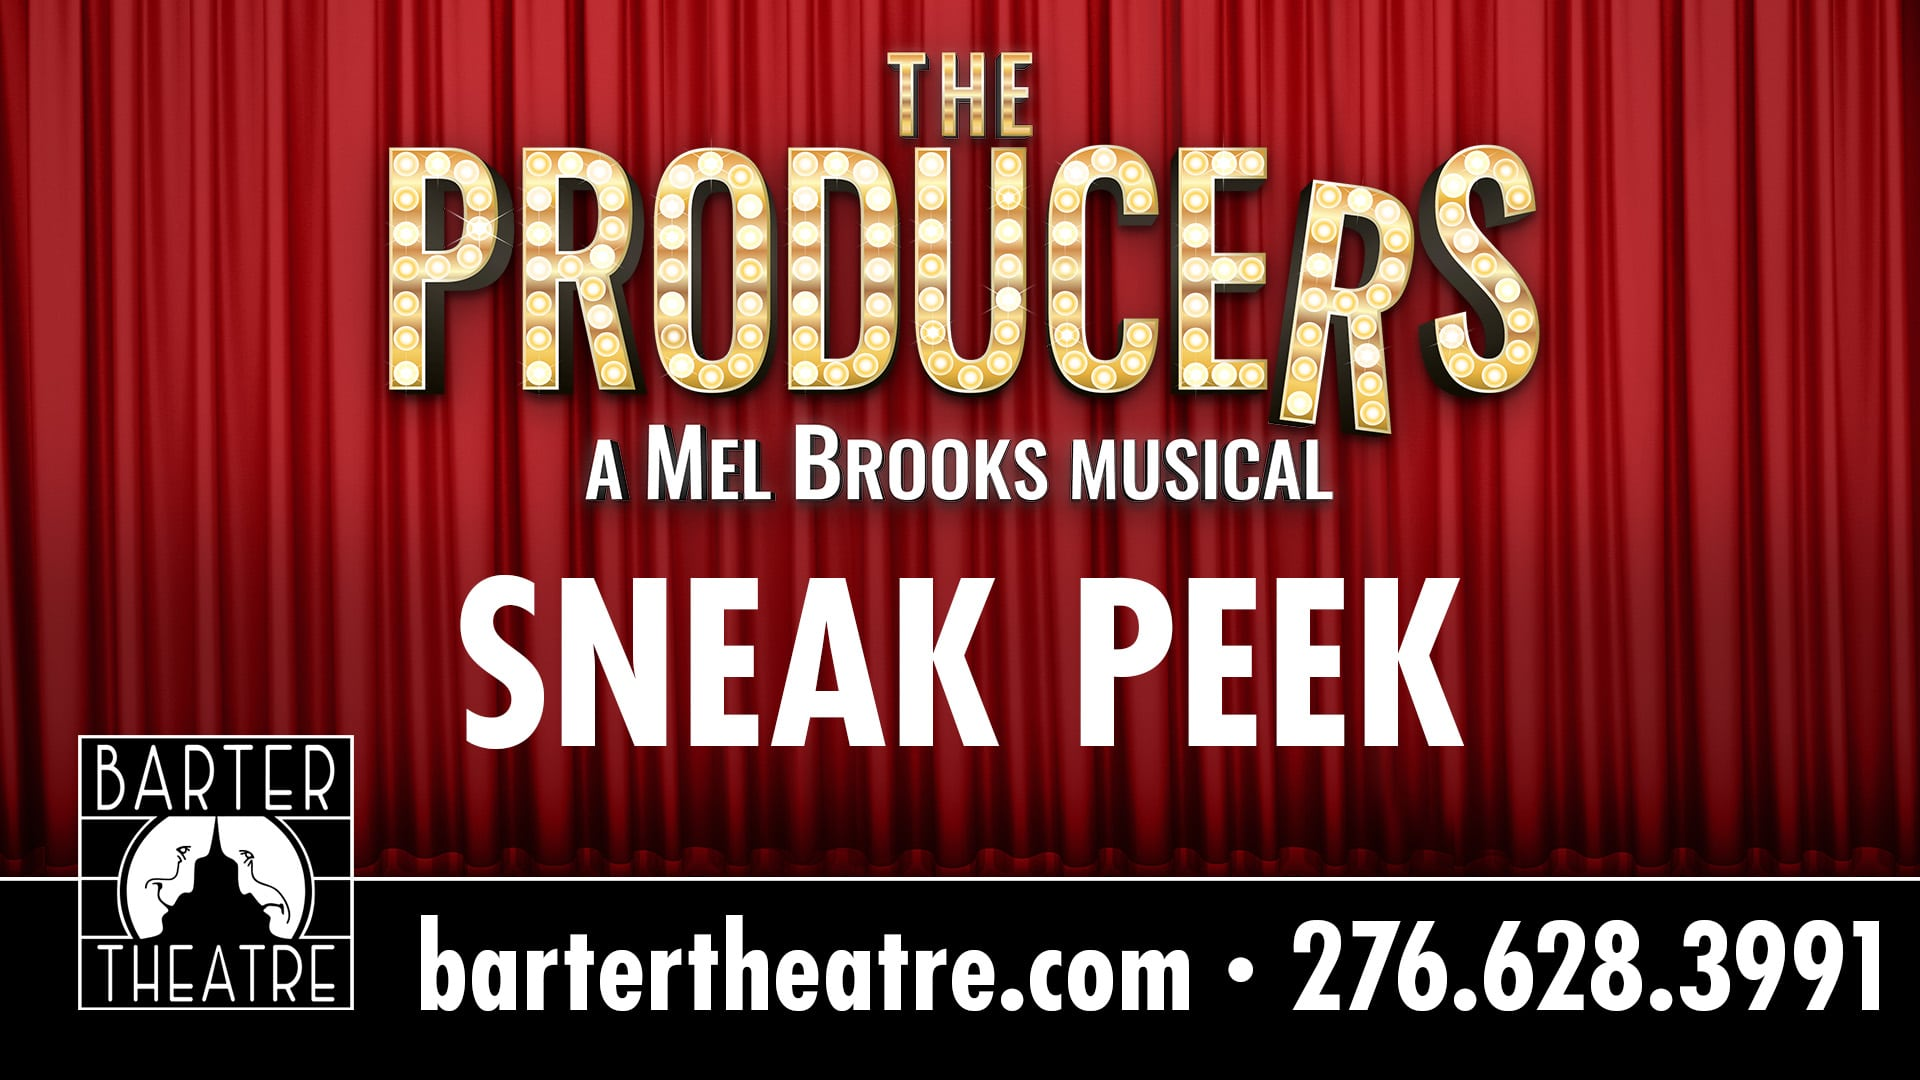 Barter Theater's The Producers - A Mel Brooks Musical Sneak Peek